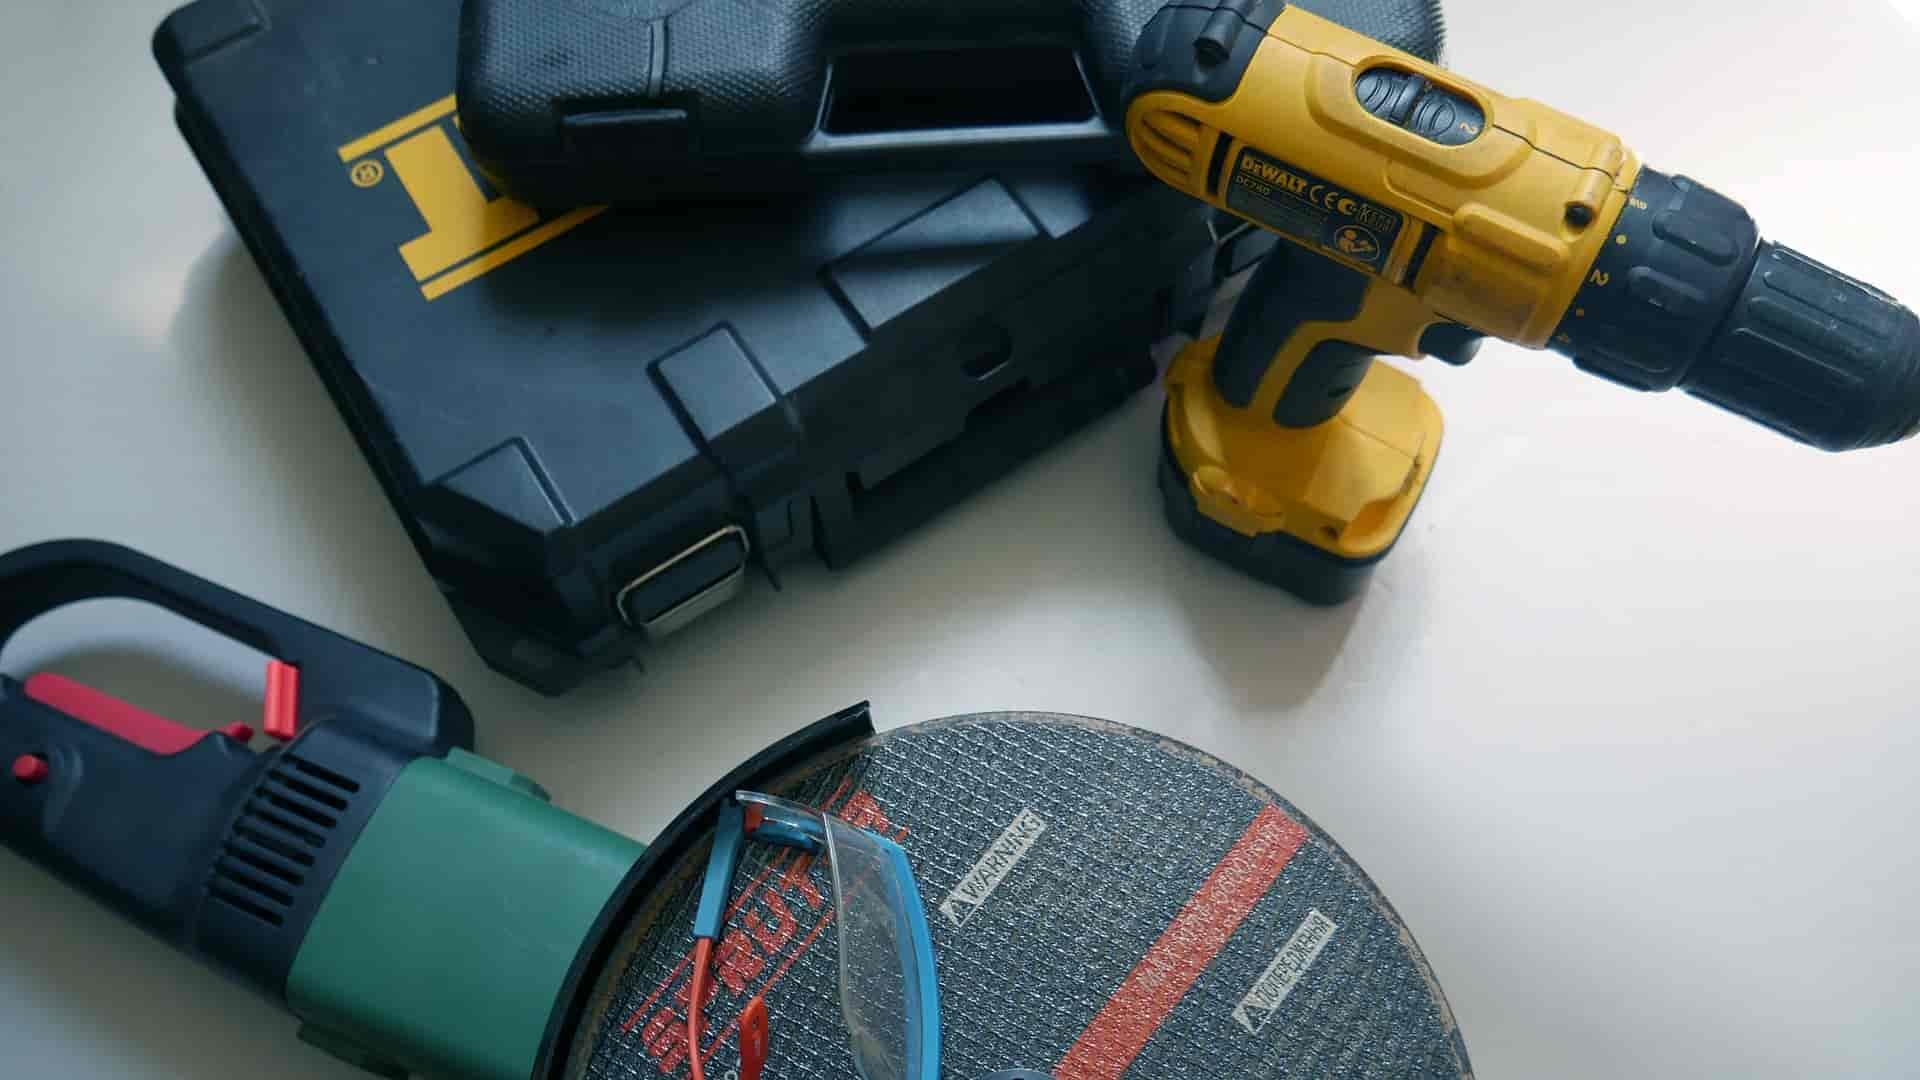 Power tools at home